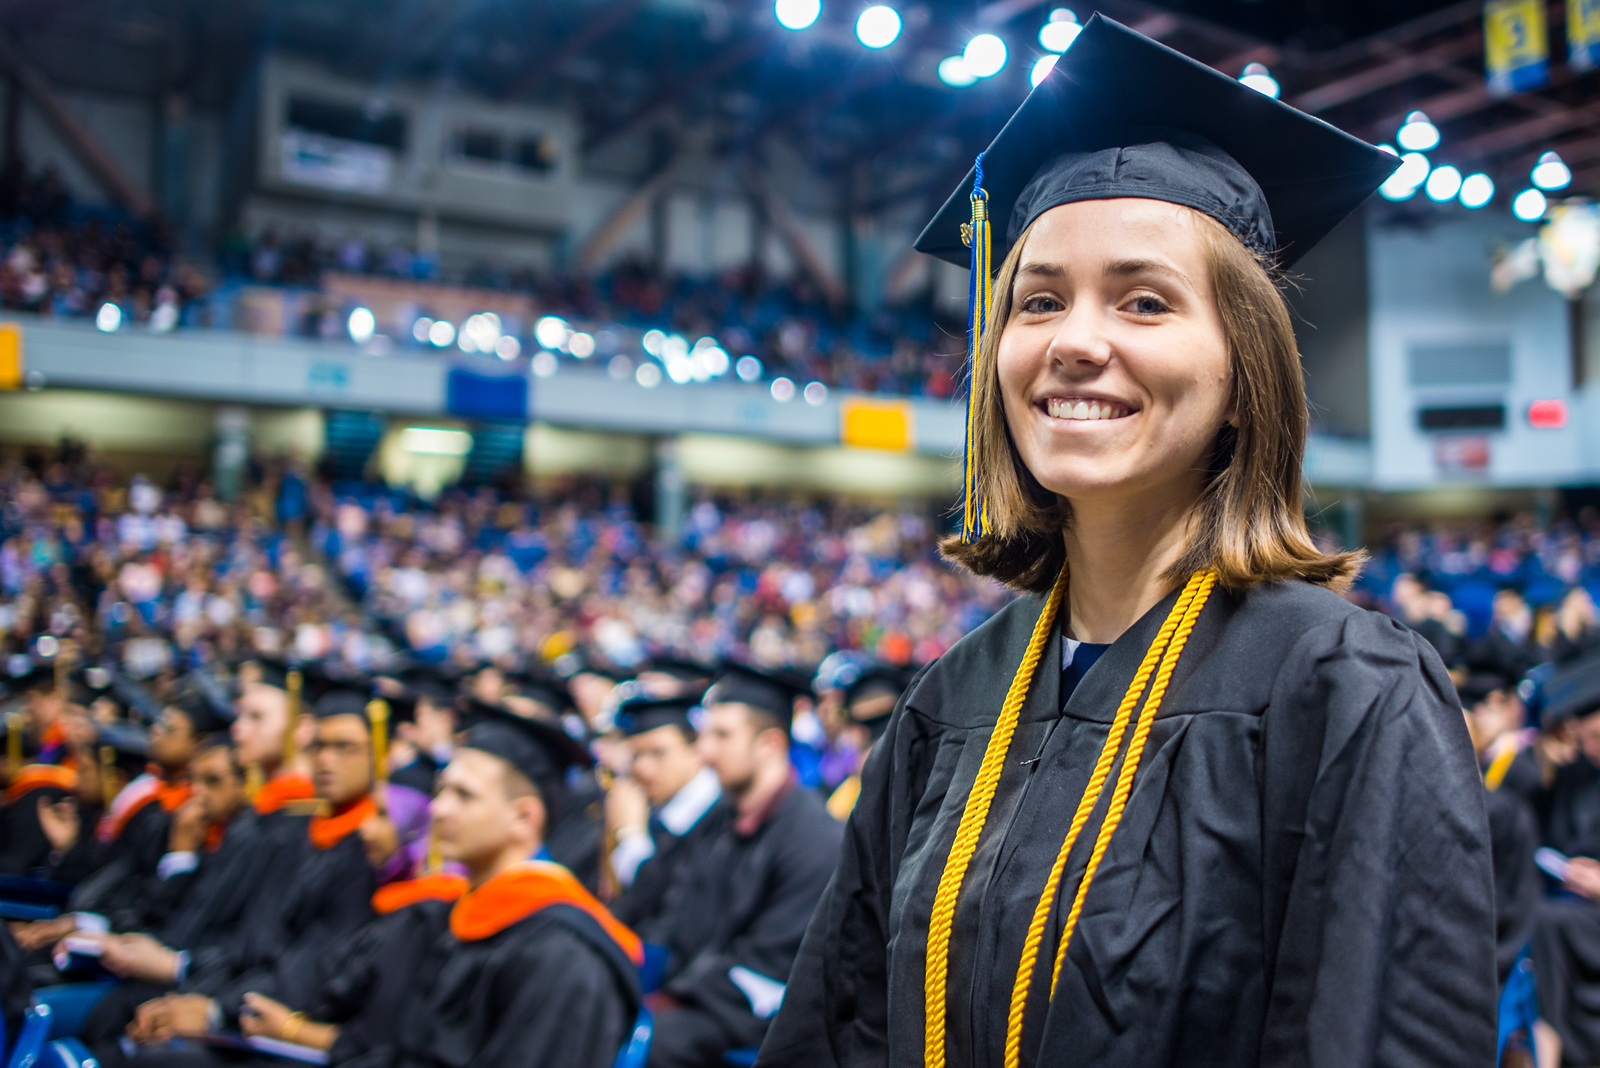 Kennedy Cailin Demboski, who earned a bachelor's degree in biological sciences, waits to receive her degree at UAF's commencement ceremony at the Carlson Center on May 5, 2018.